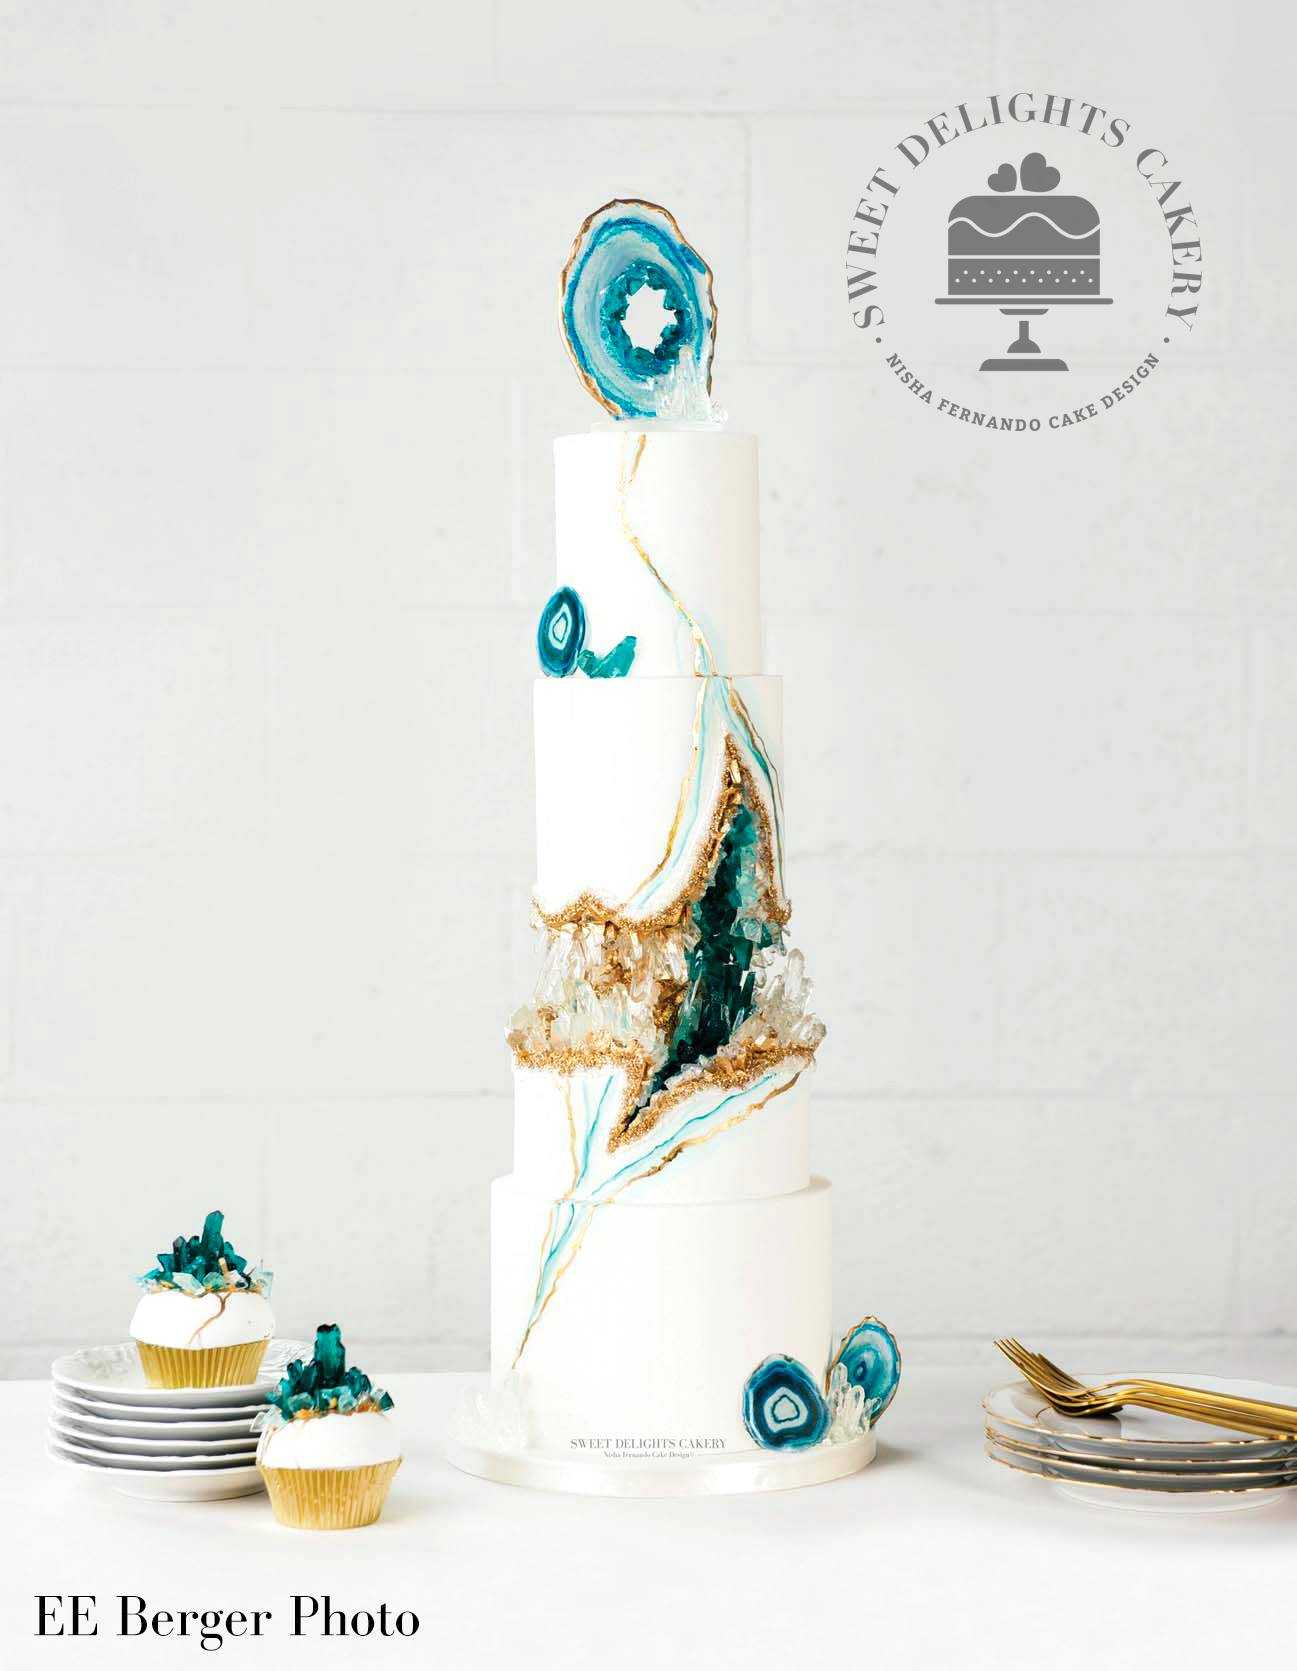 White with teal rock geode wedding cake and cupcakes